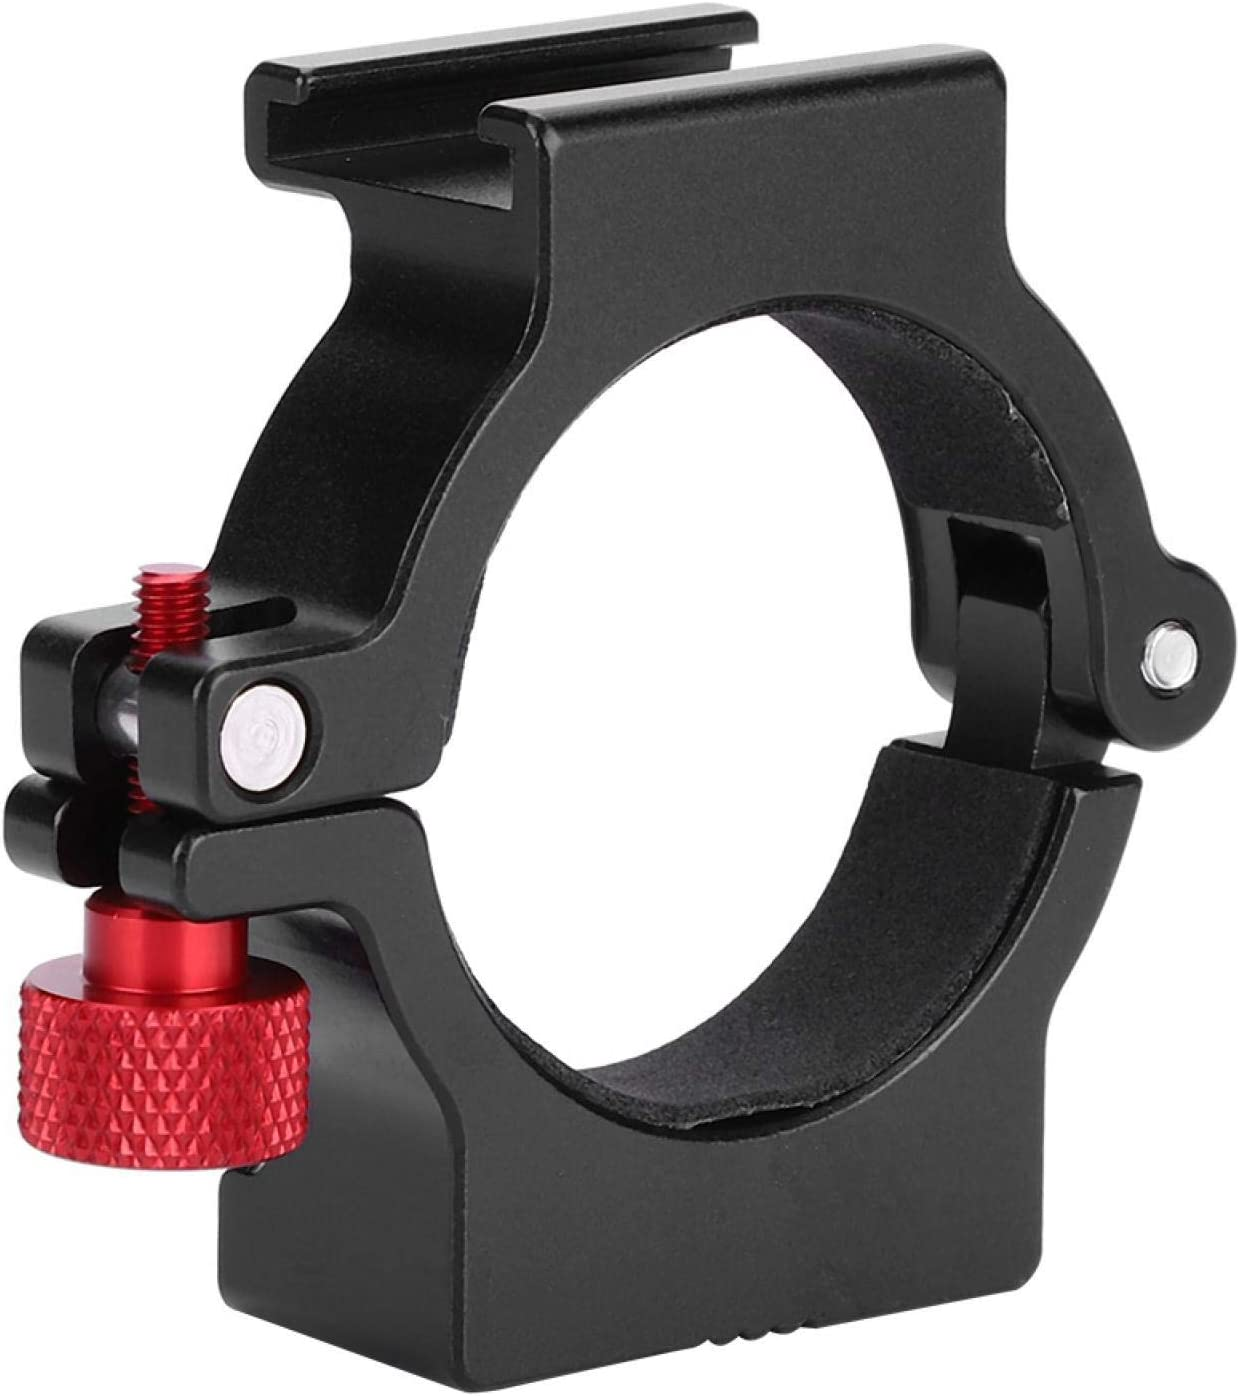 Emoshayoga Hot Shoe Adapter Mount Ring sensitivity high OFFer Light Ad Free shipping on posting reviews